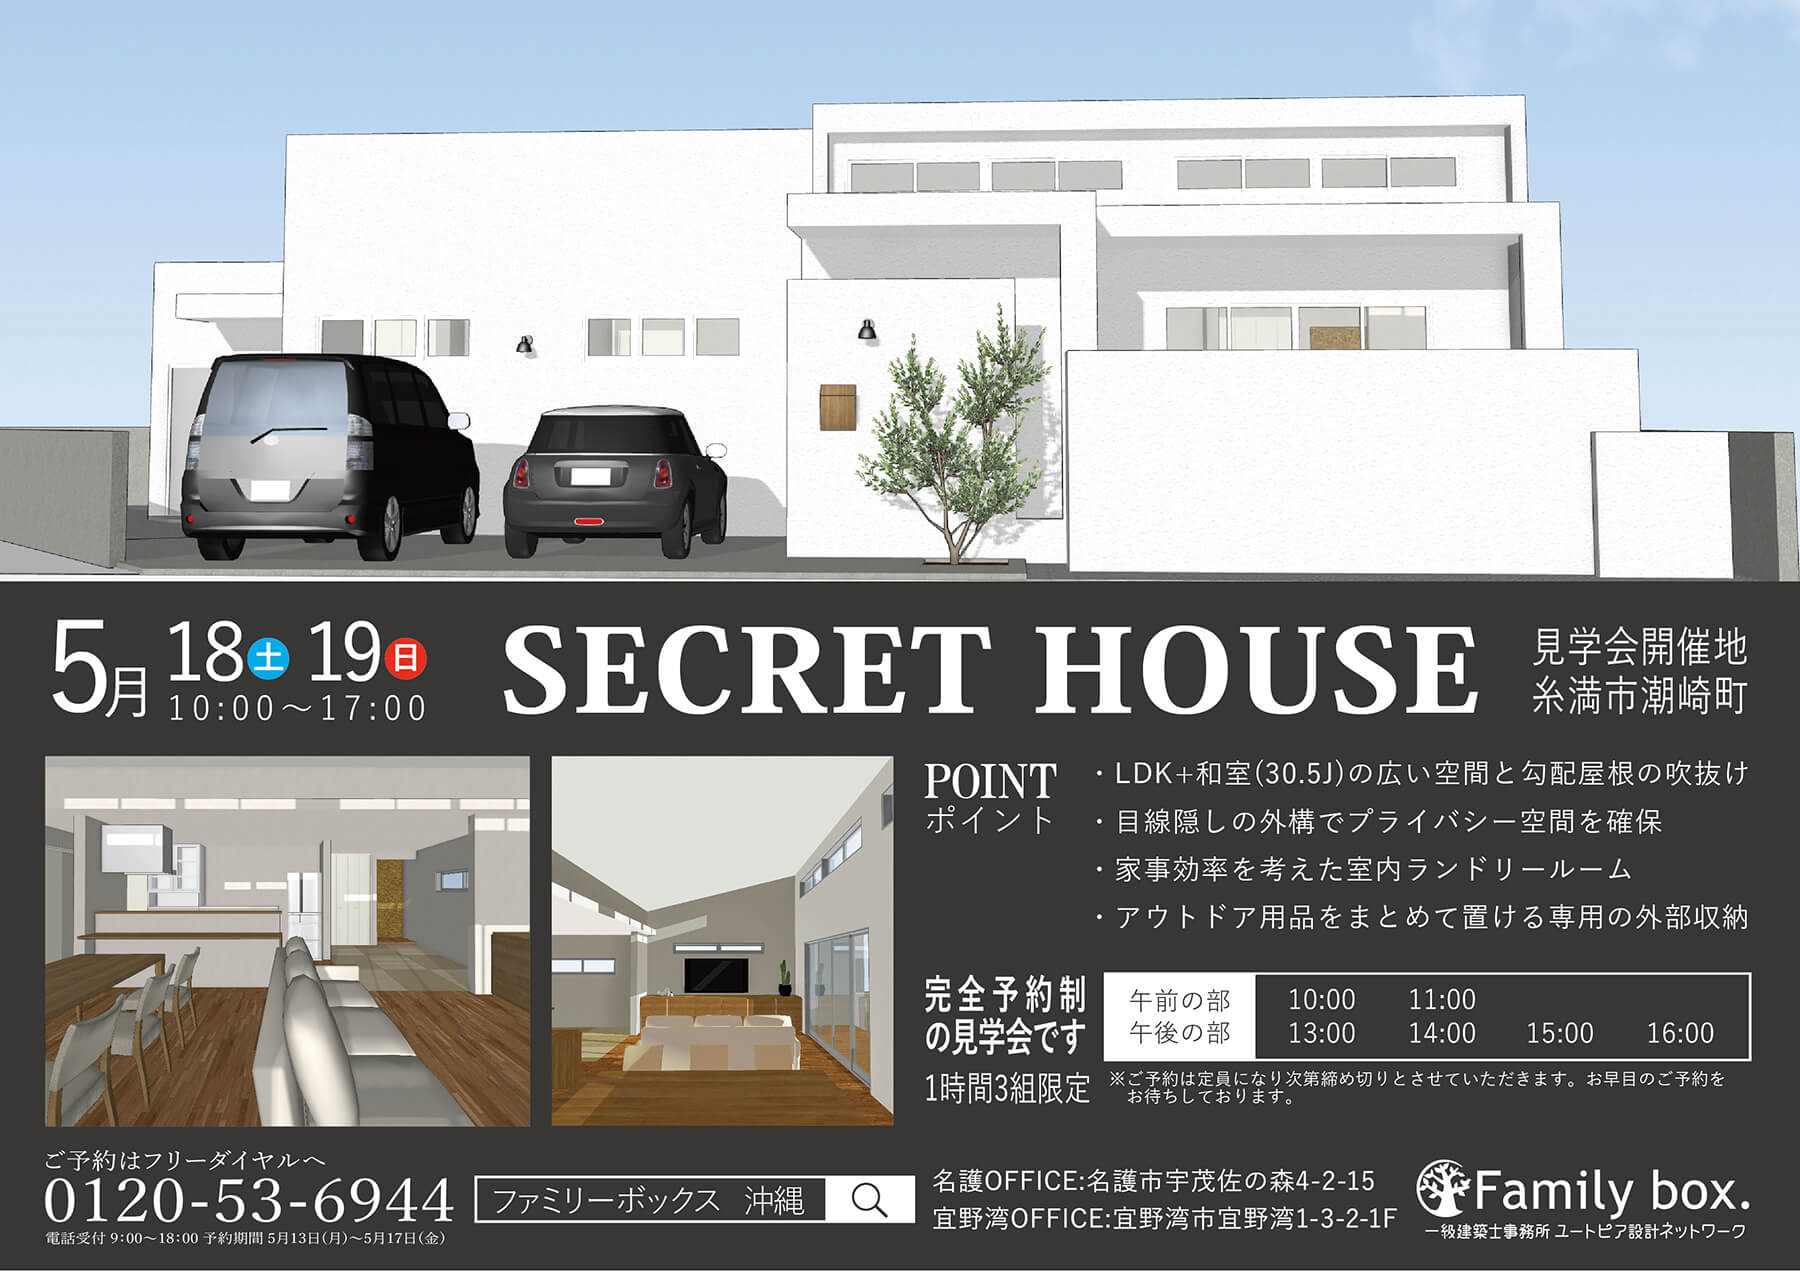 【SECRET HOUSE 2019 MAY in 糸満市潮崎】